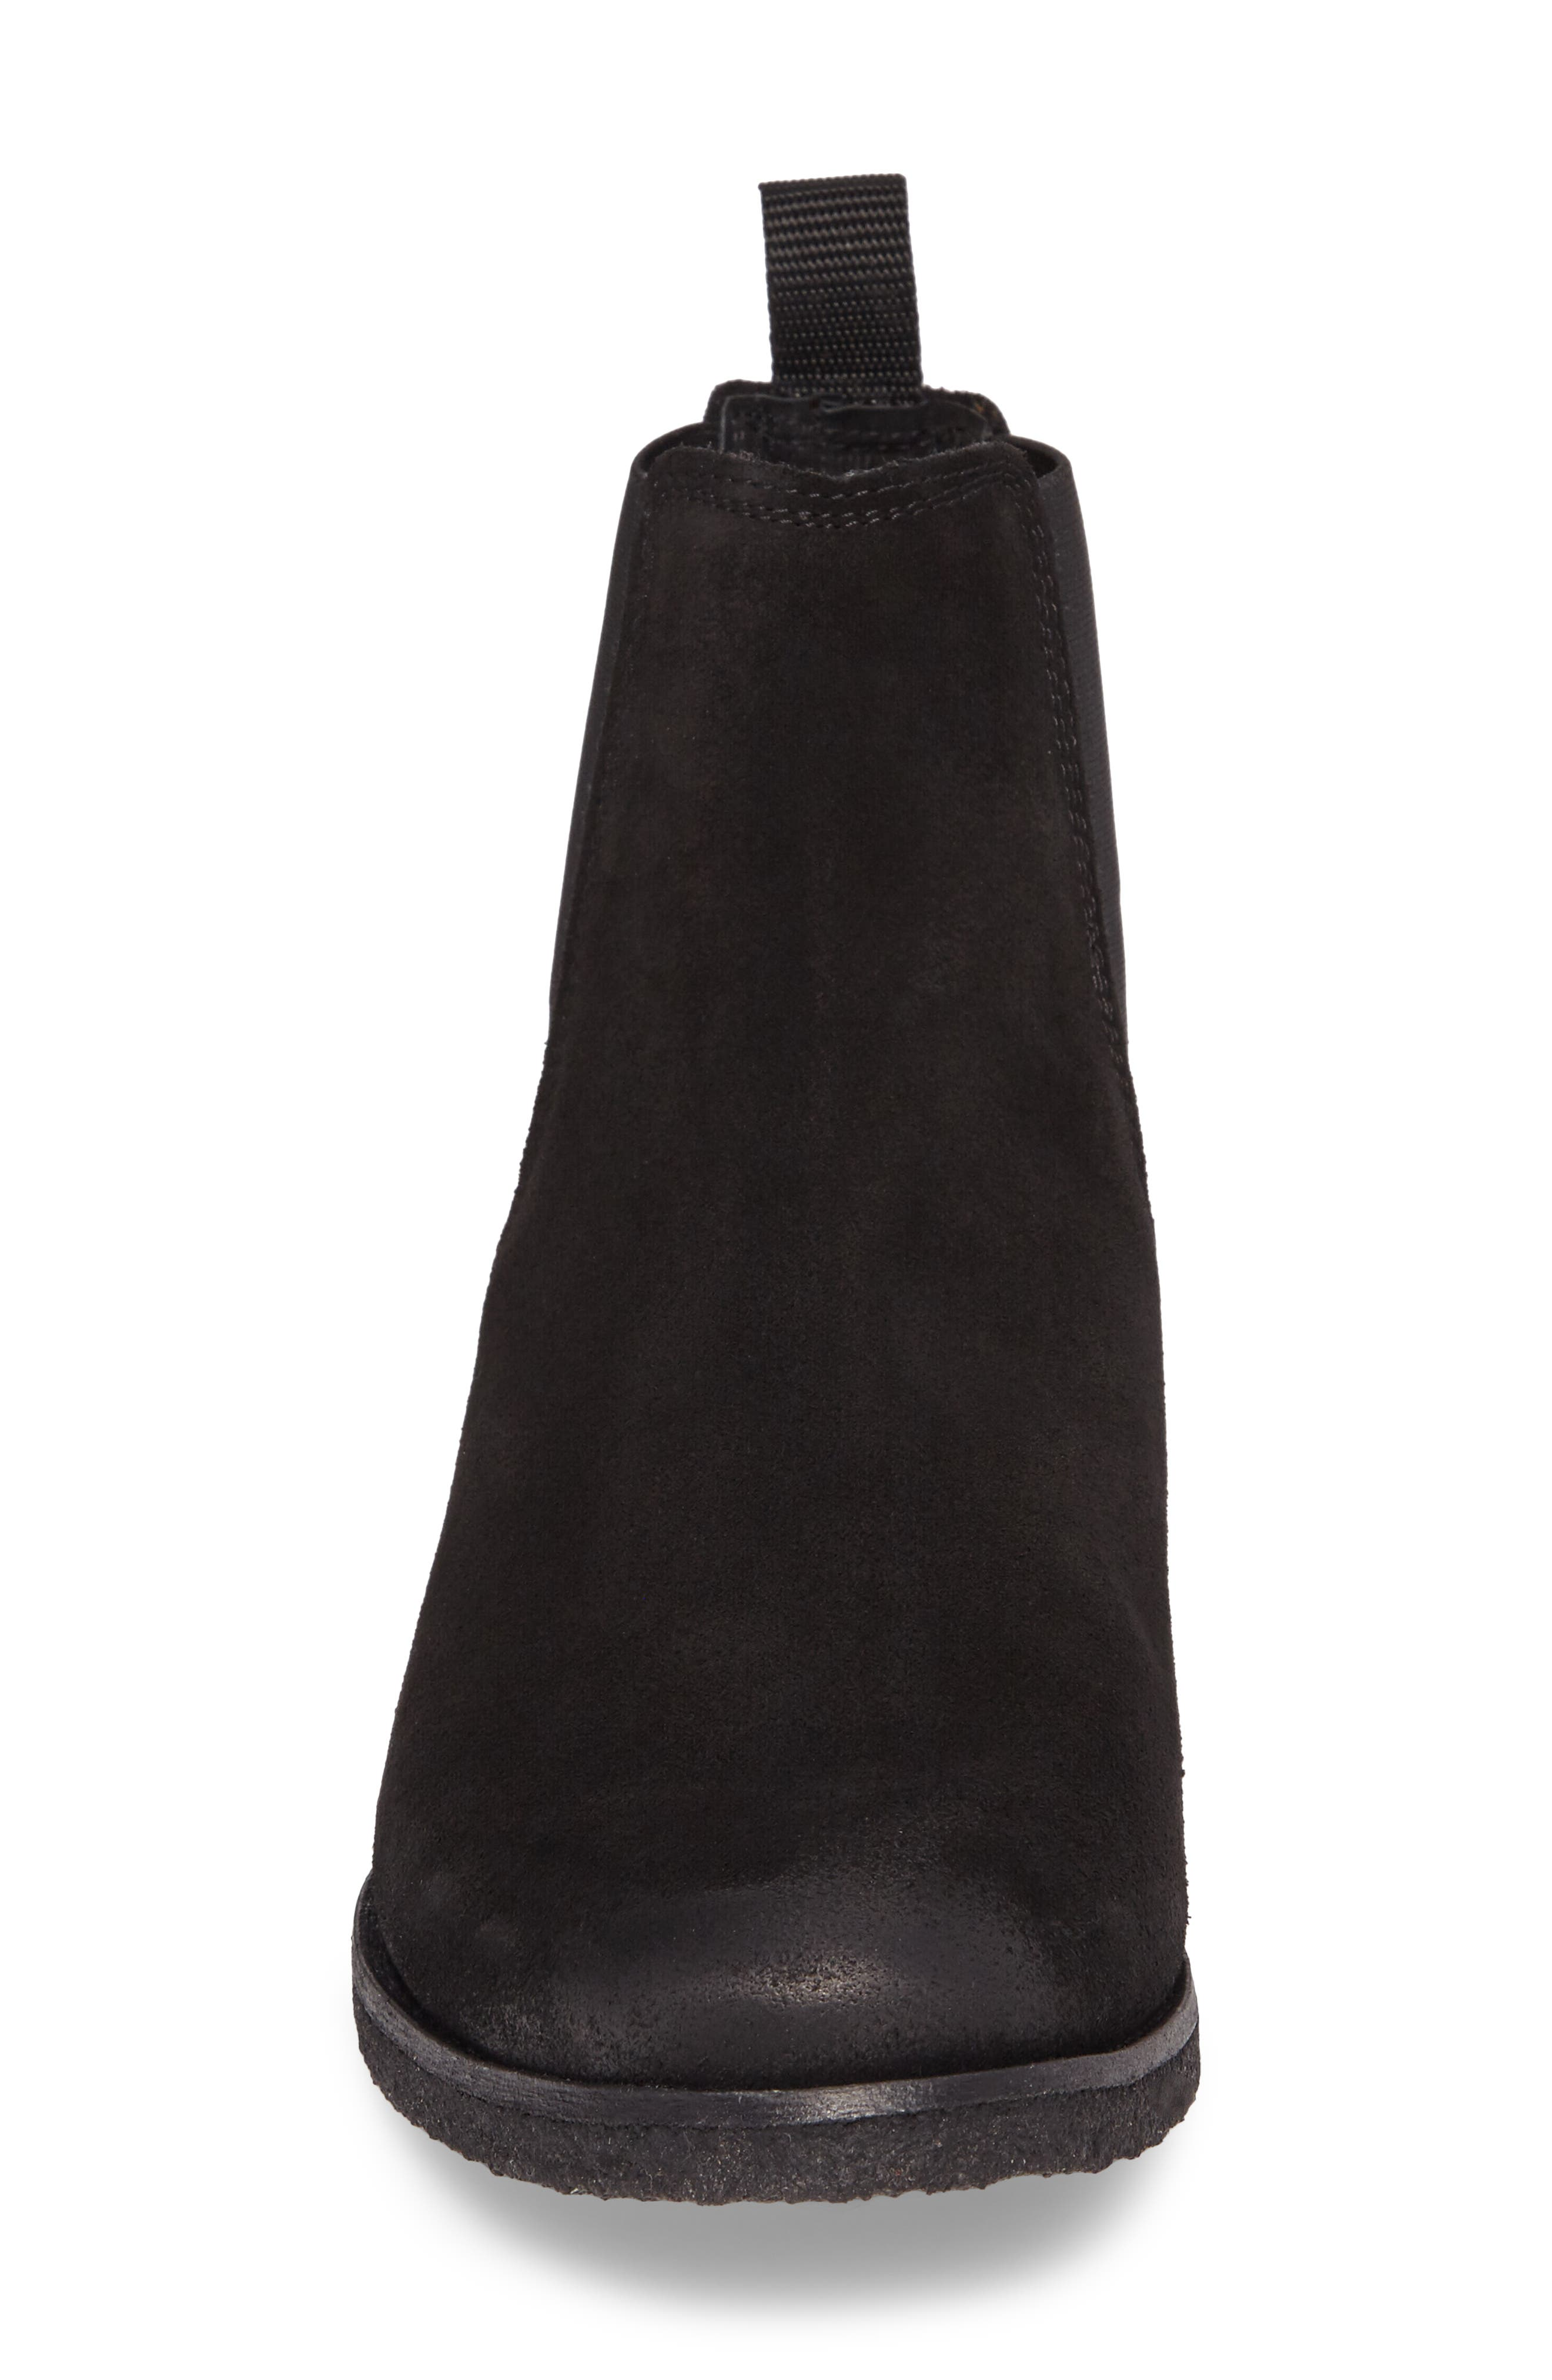 Jared Chelsea Boot,                             Alternate thumbnail 4, color,                             Black Suede